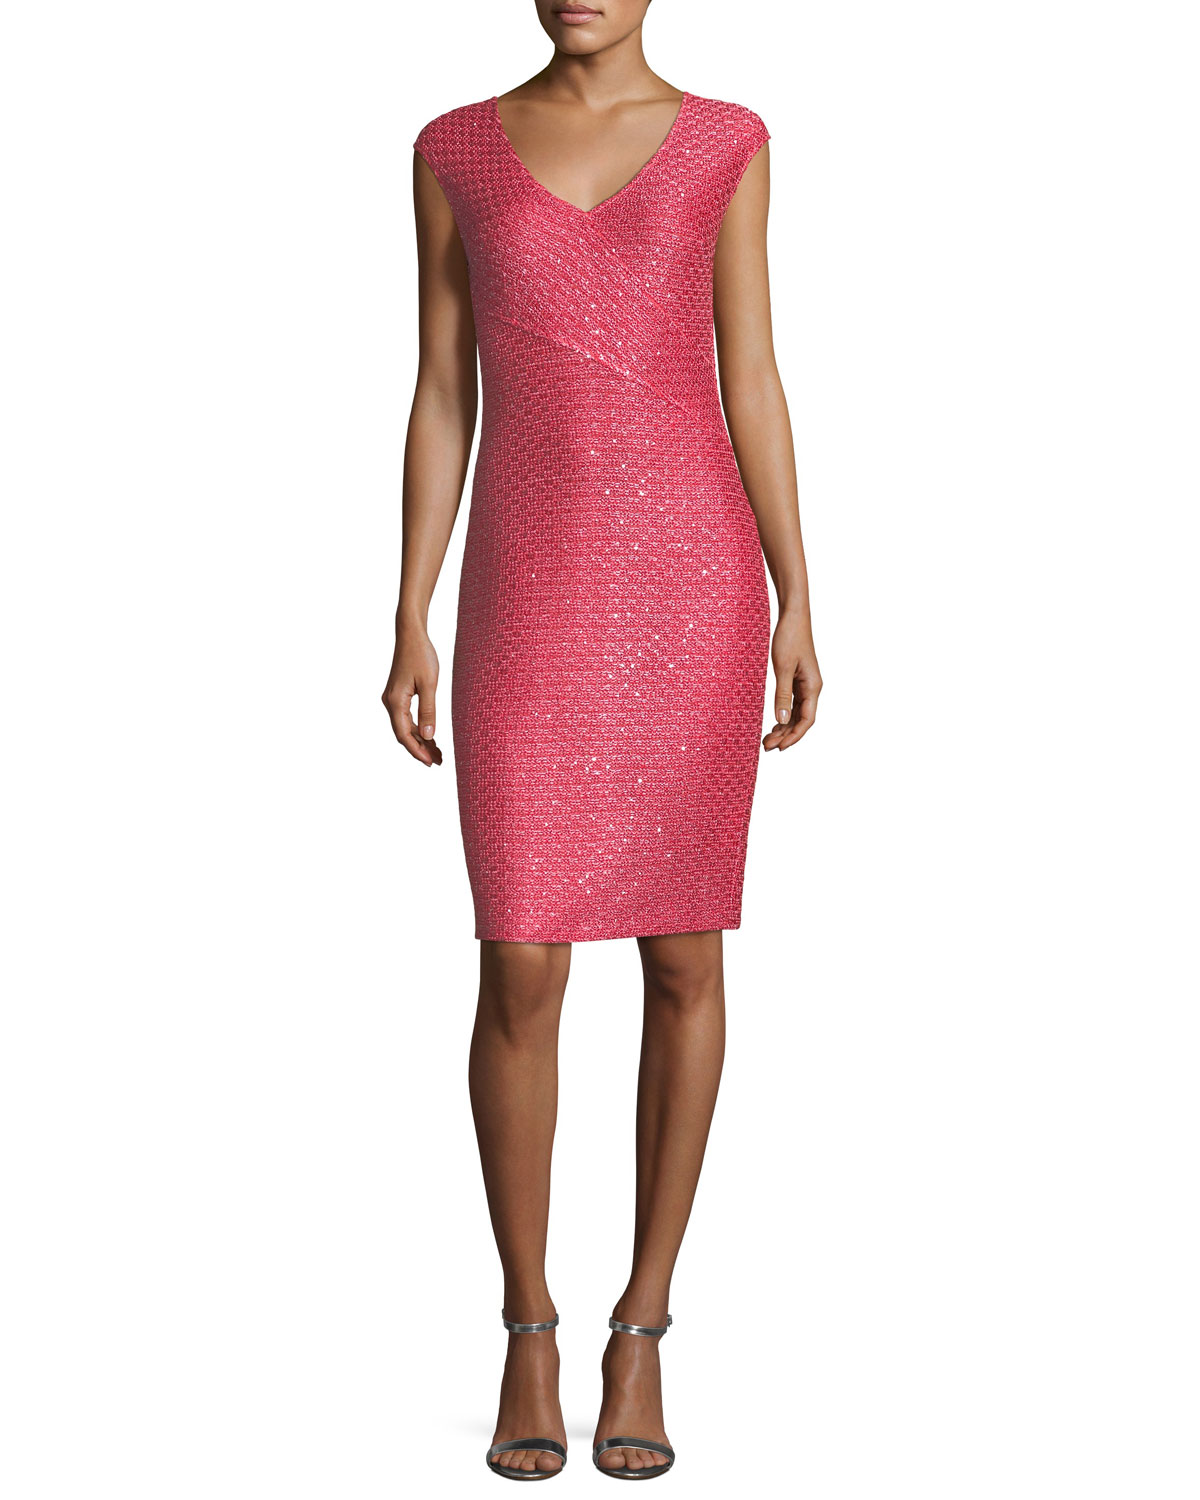 Hansh-Knit V-Neck Cocktail Dress